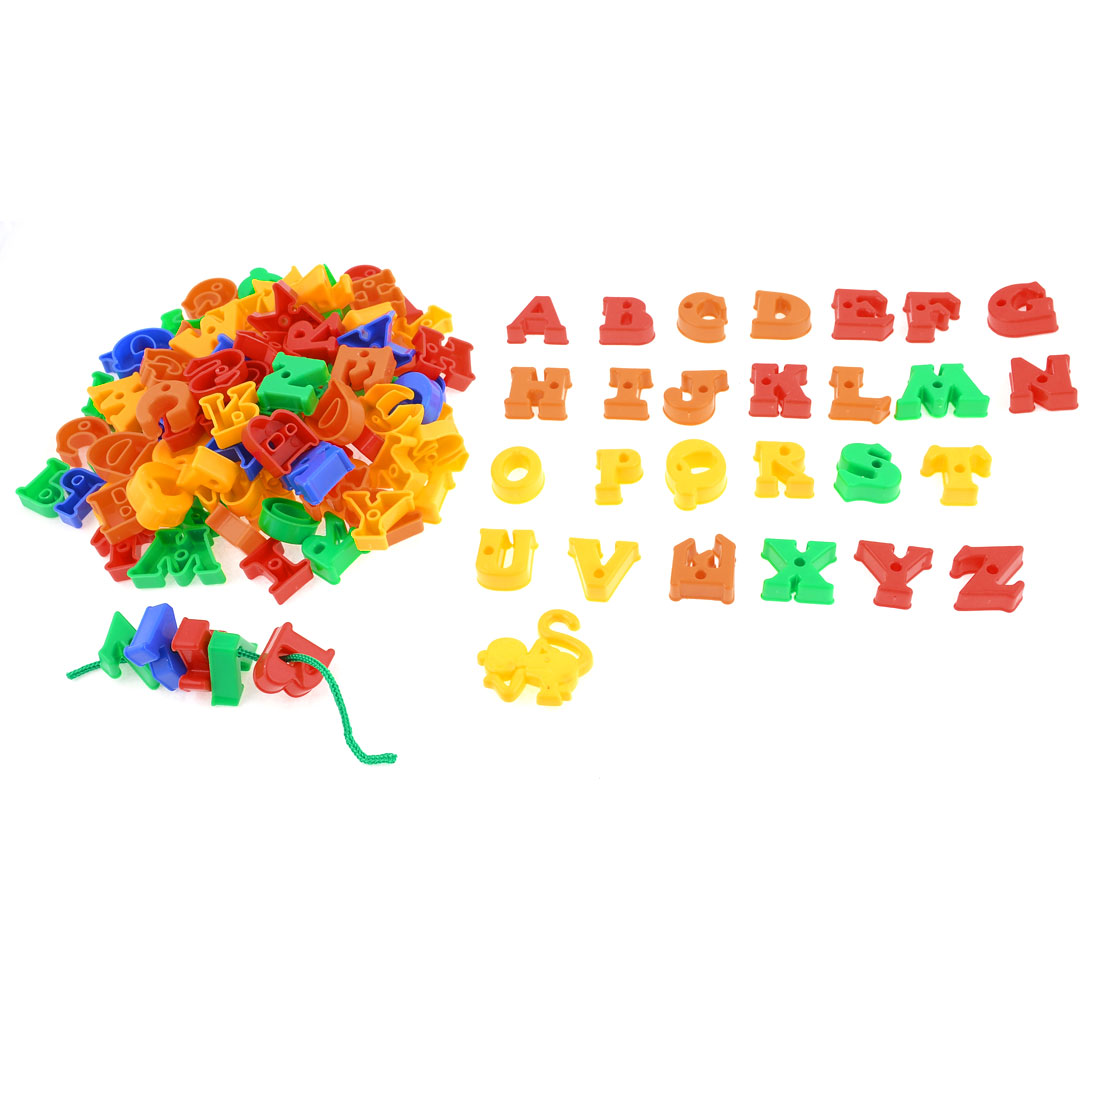 123 in 1 Multicolor Letter A-Z Mental Assembly Building Block Toy for Kid Child